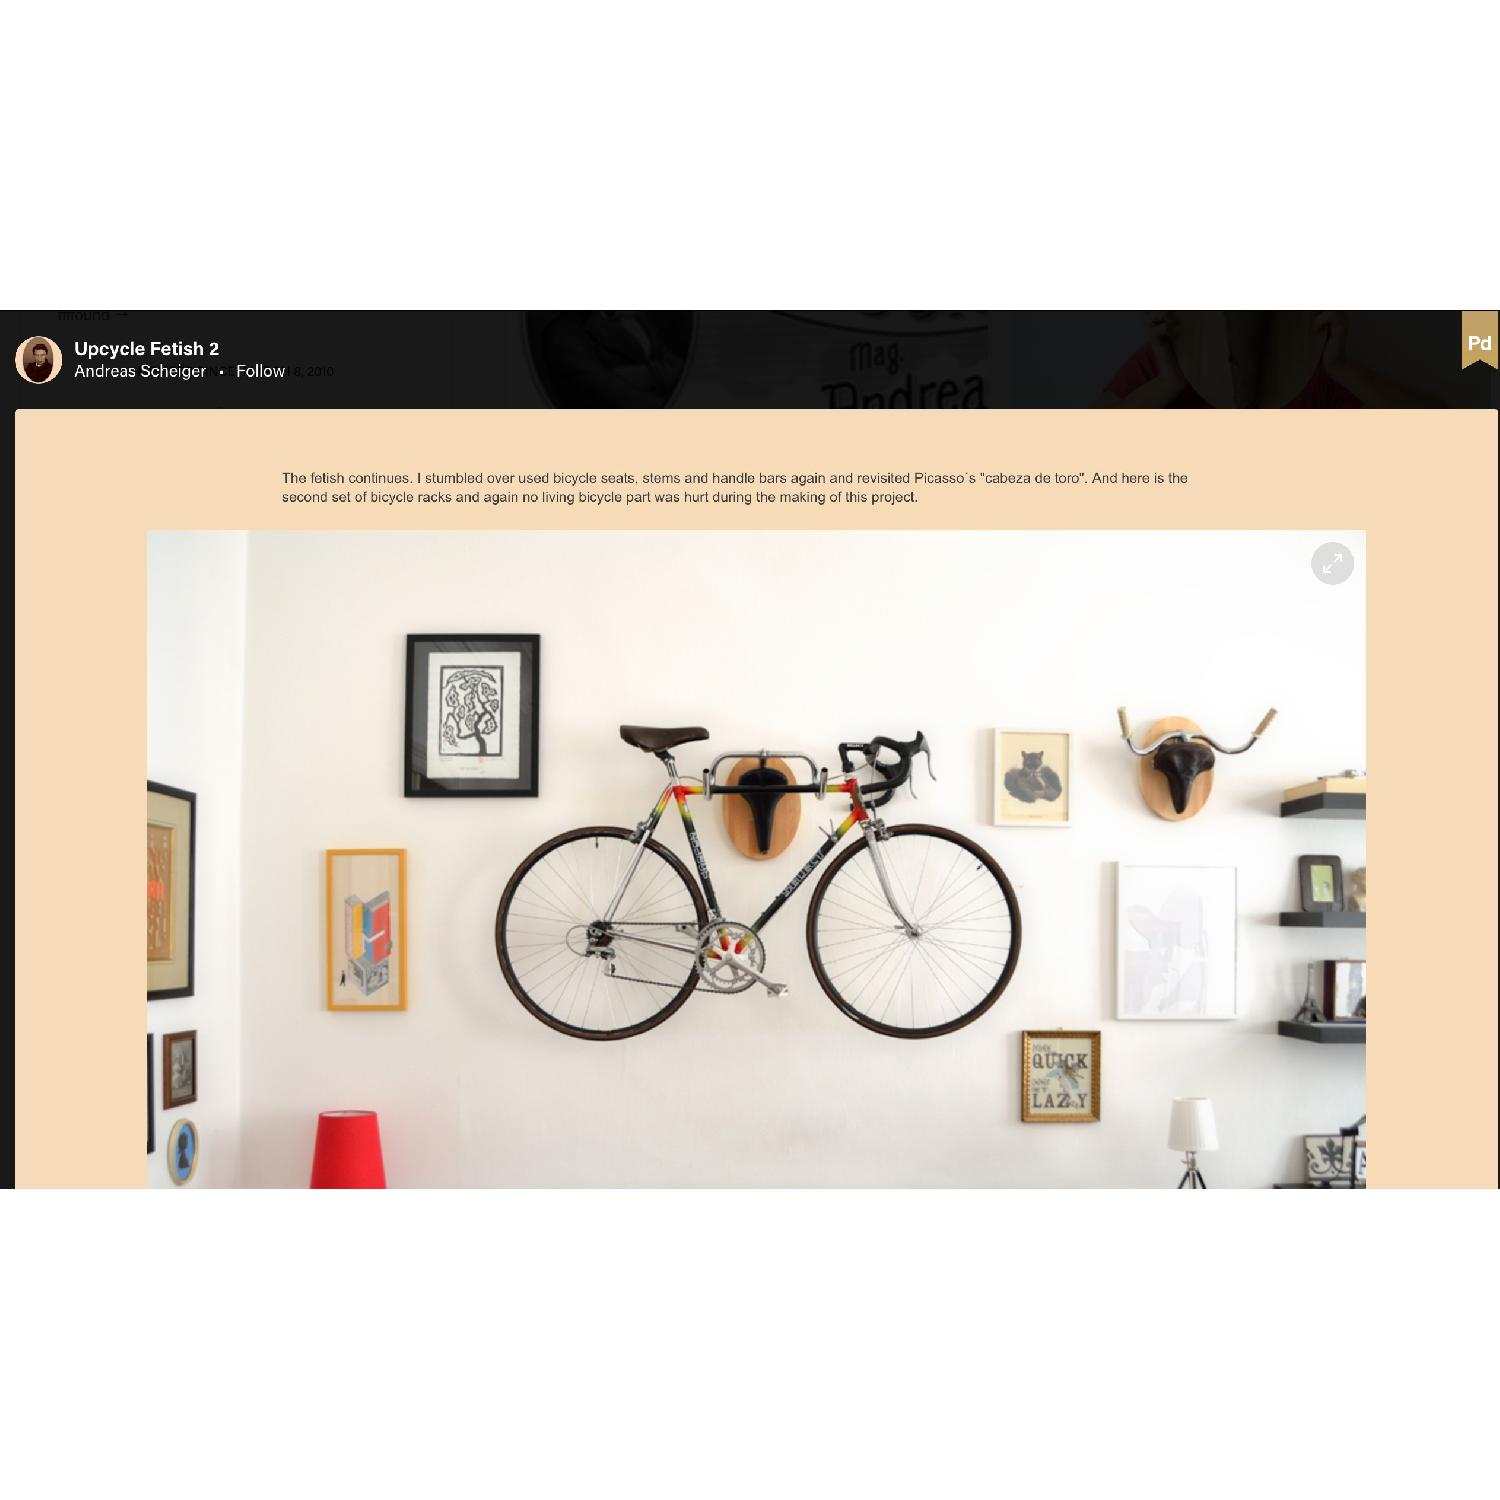 Andreas Schieger Euro Wall Art Bicycle Hangers - image-3